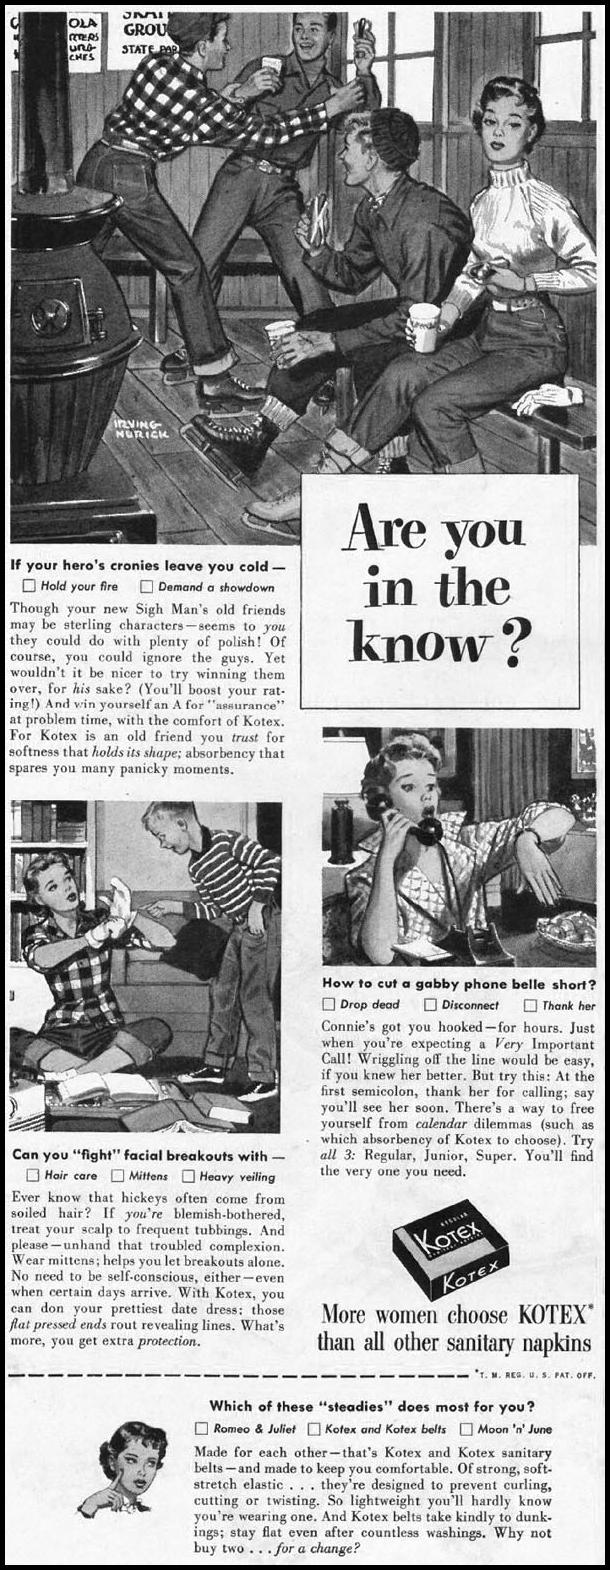 KOTEX LADIES' HOME JOURNAL 03/01/1954 p. 96